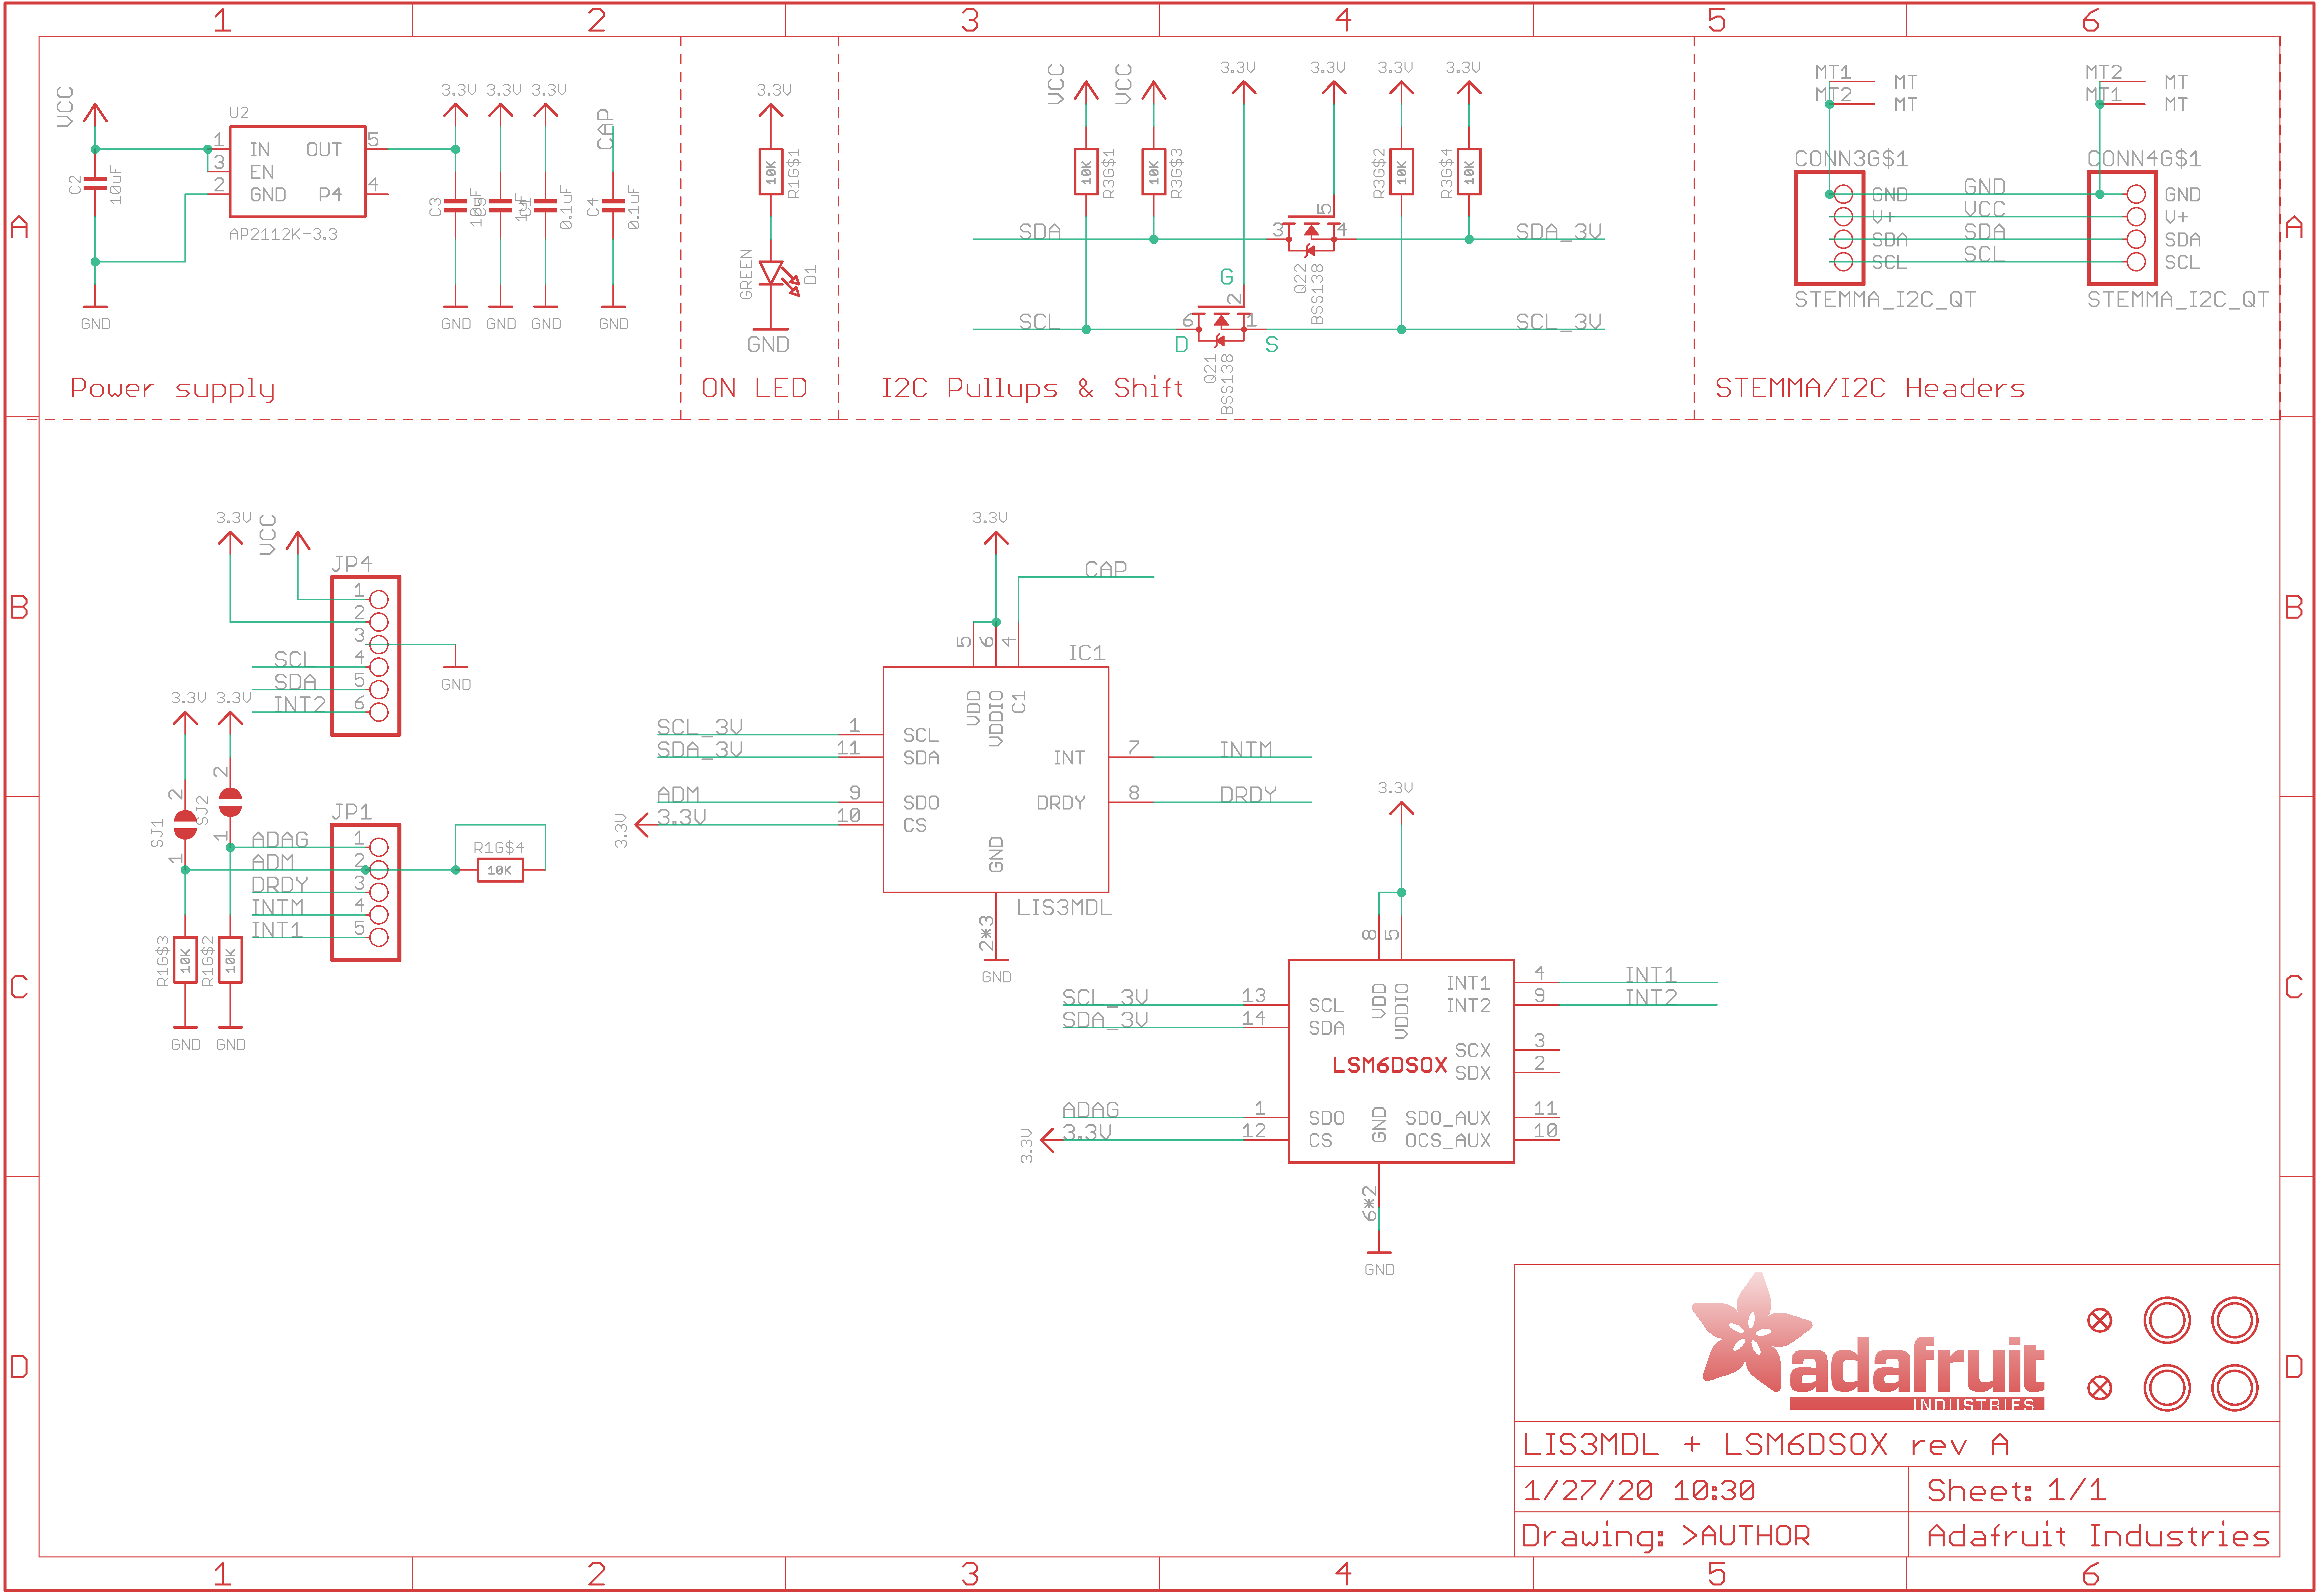 adafruit_products_4517_sch.png